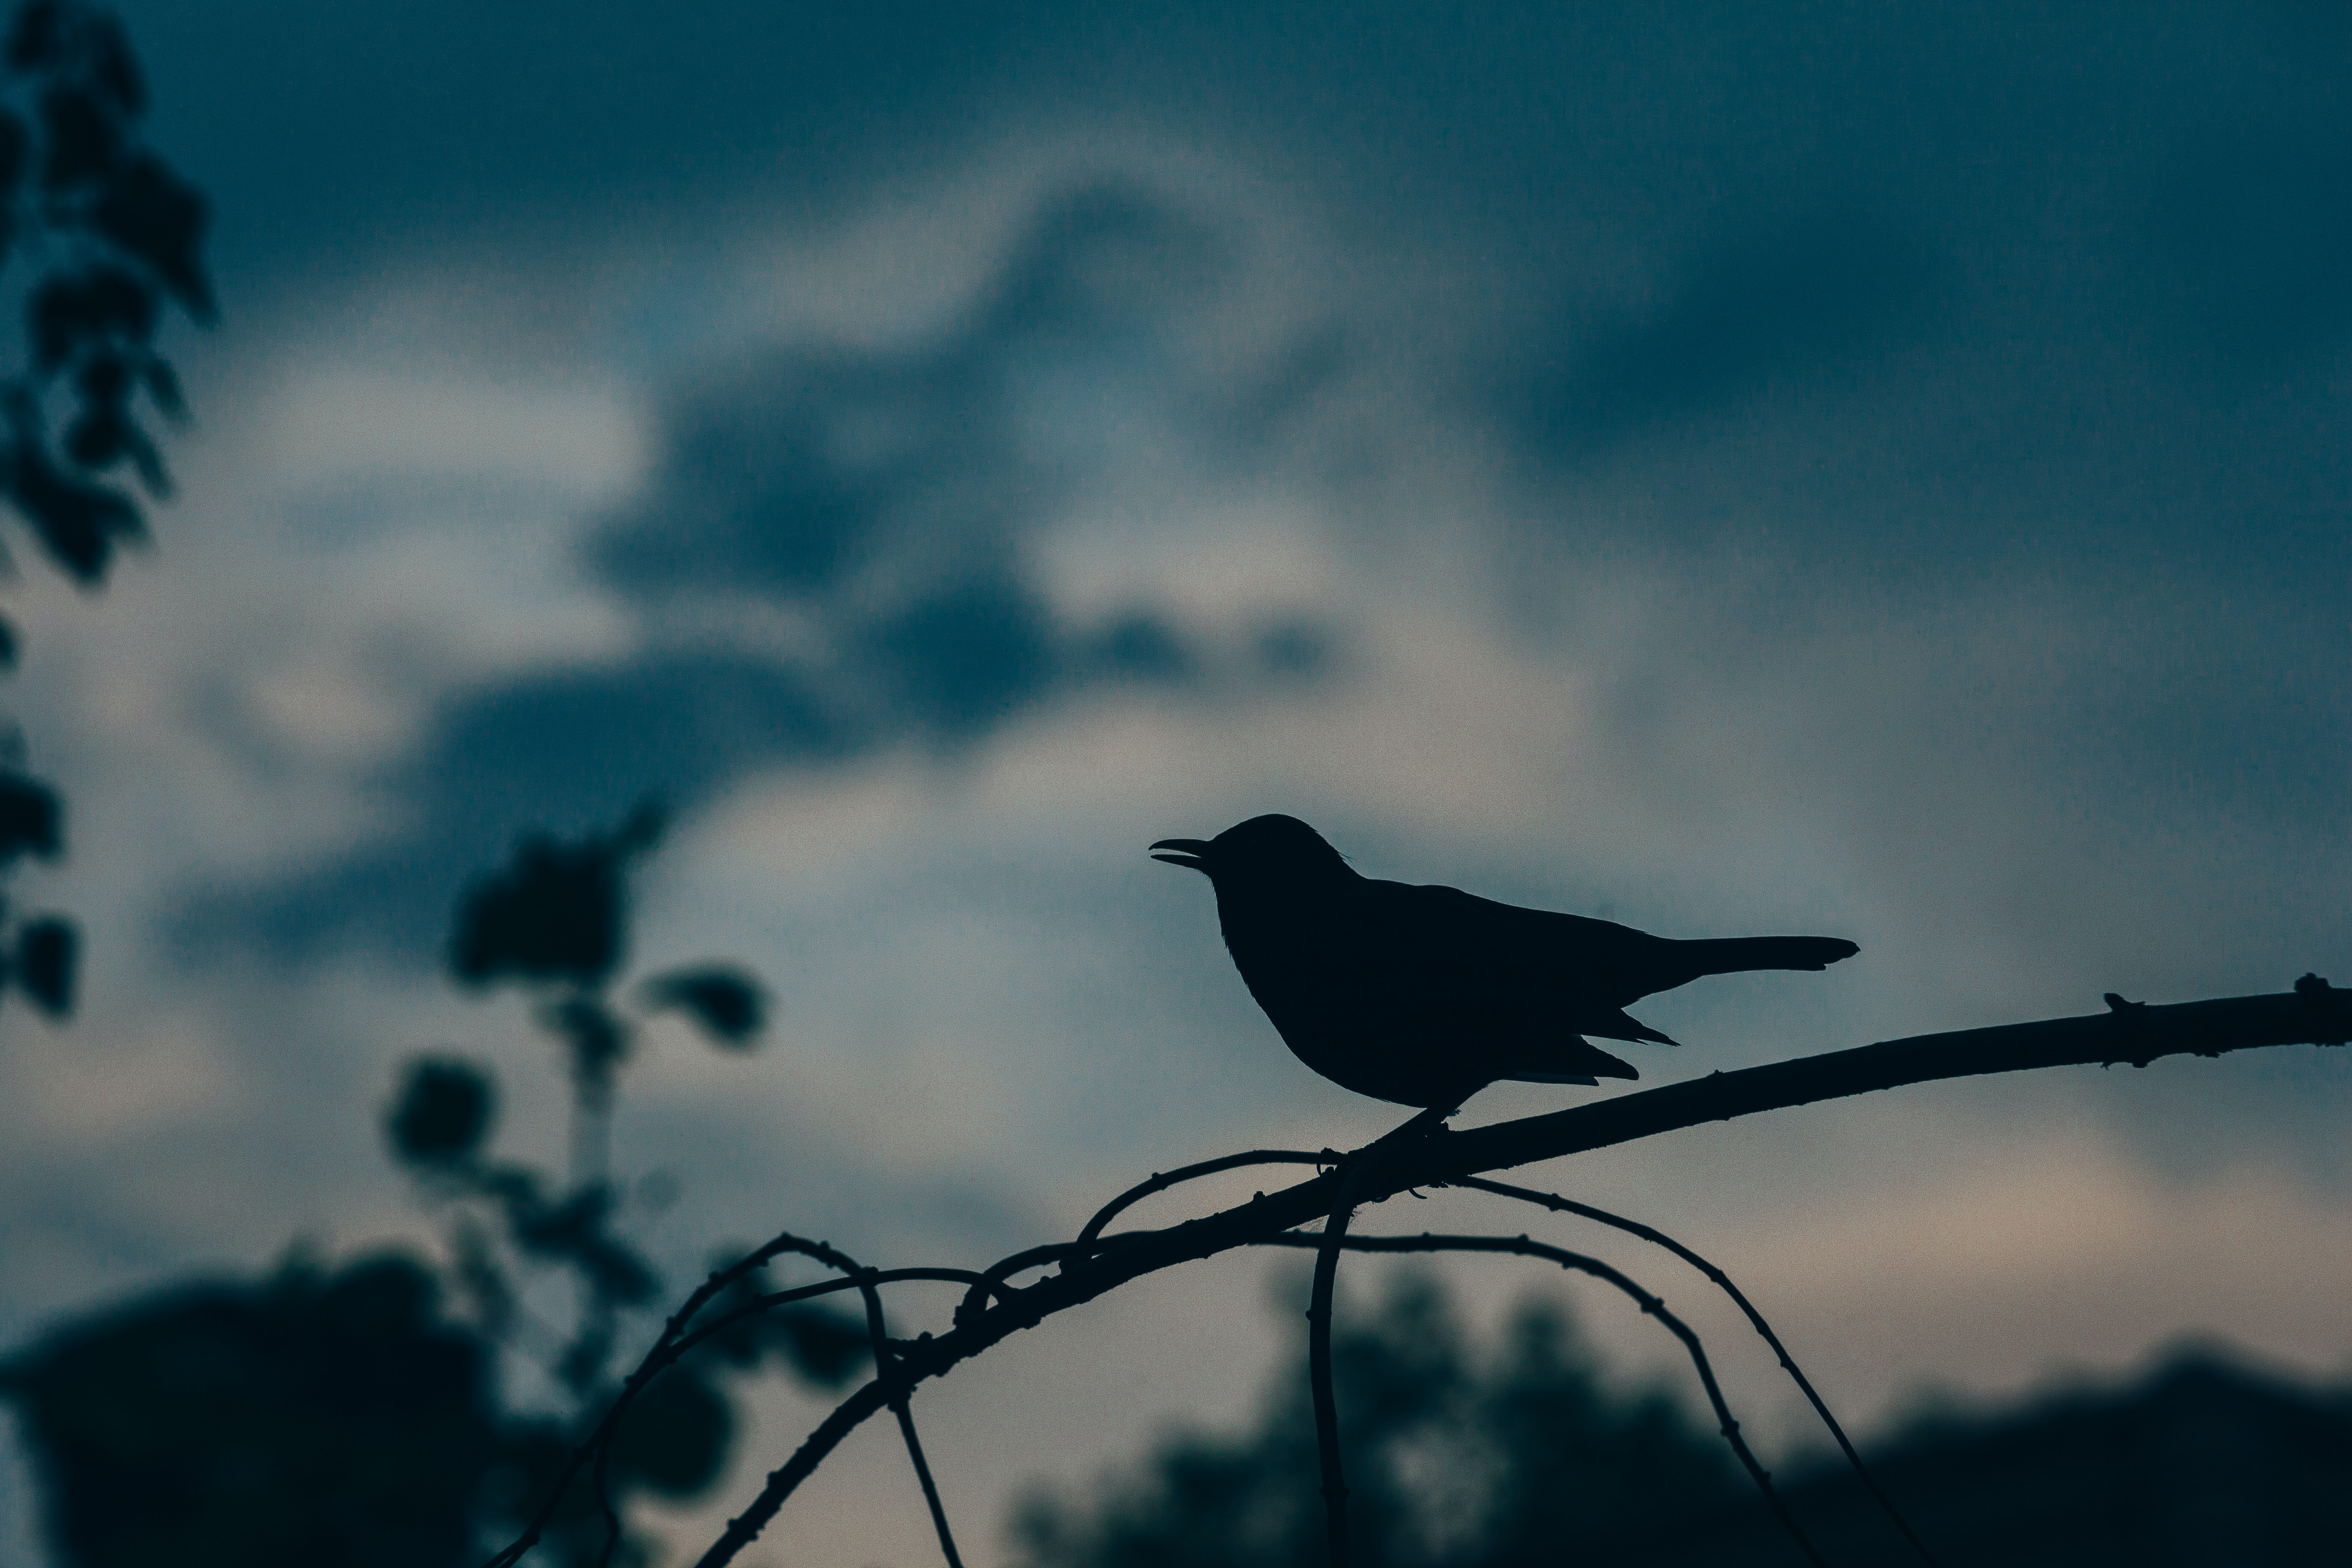 Silhouette of a bird perched on a branch against a cloudy evening sky